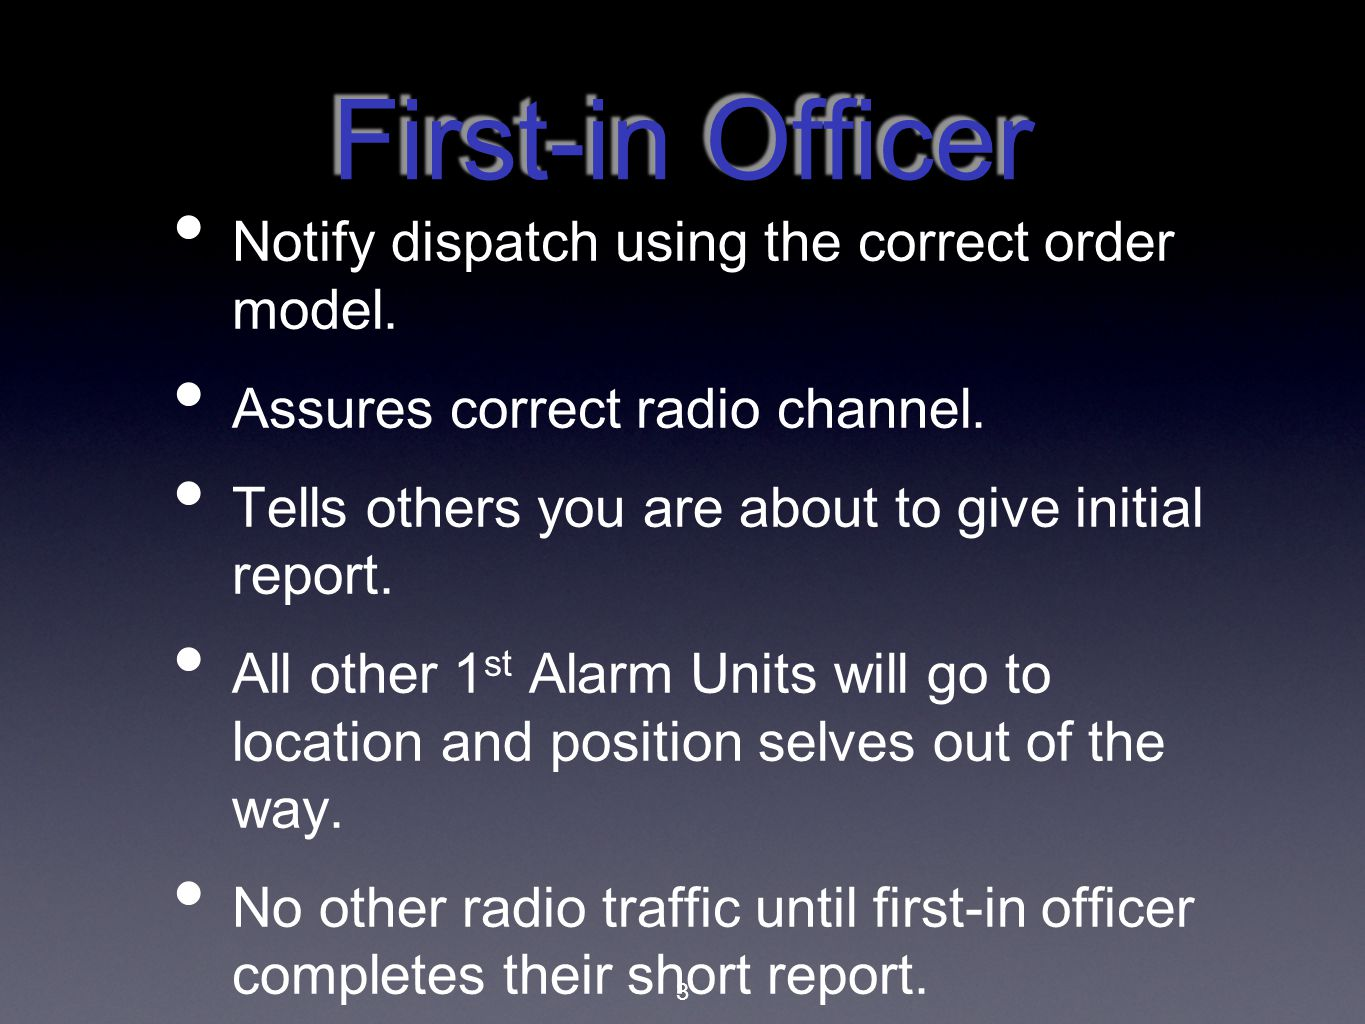 First-in Officer Notify dispatch using the correct order model.